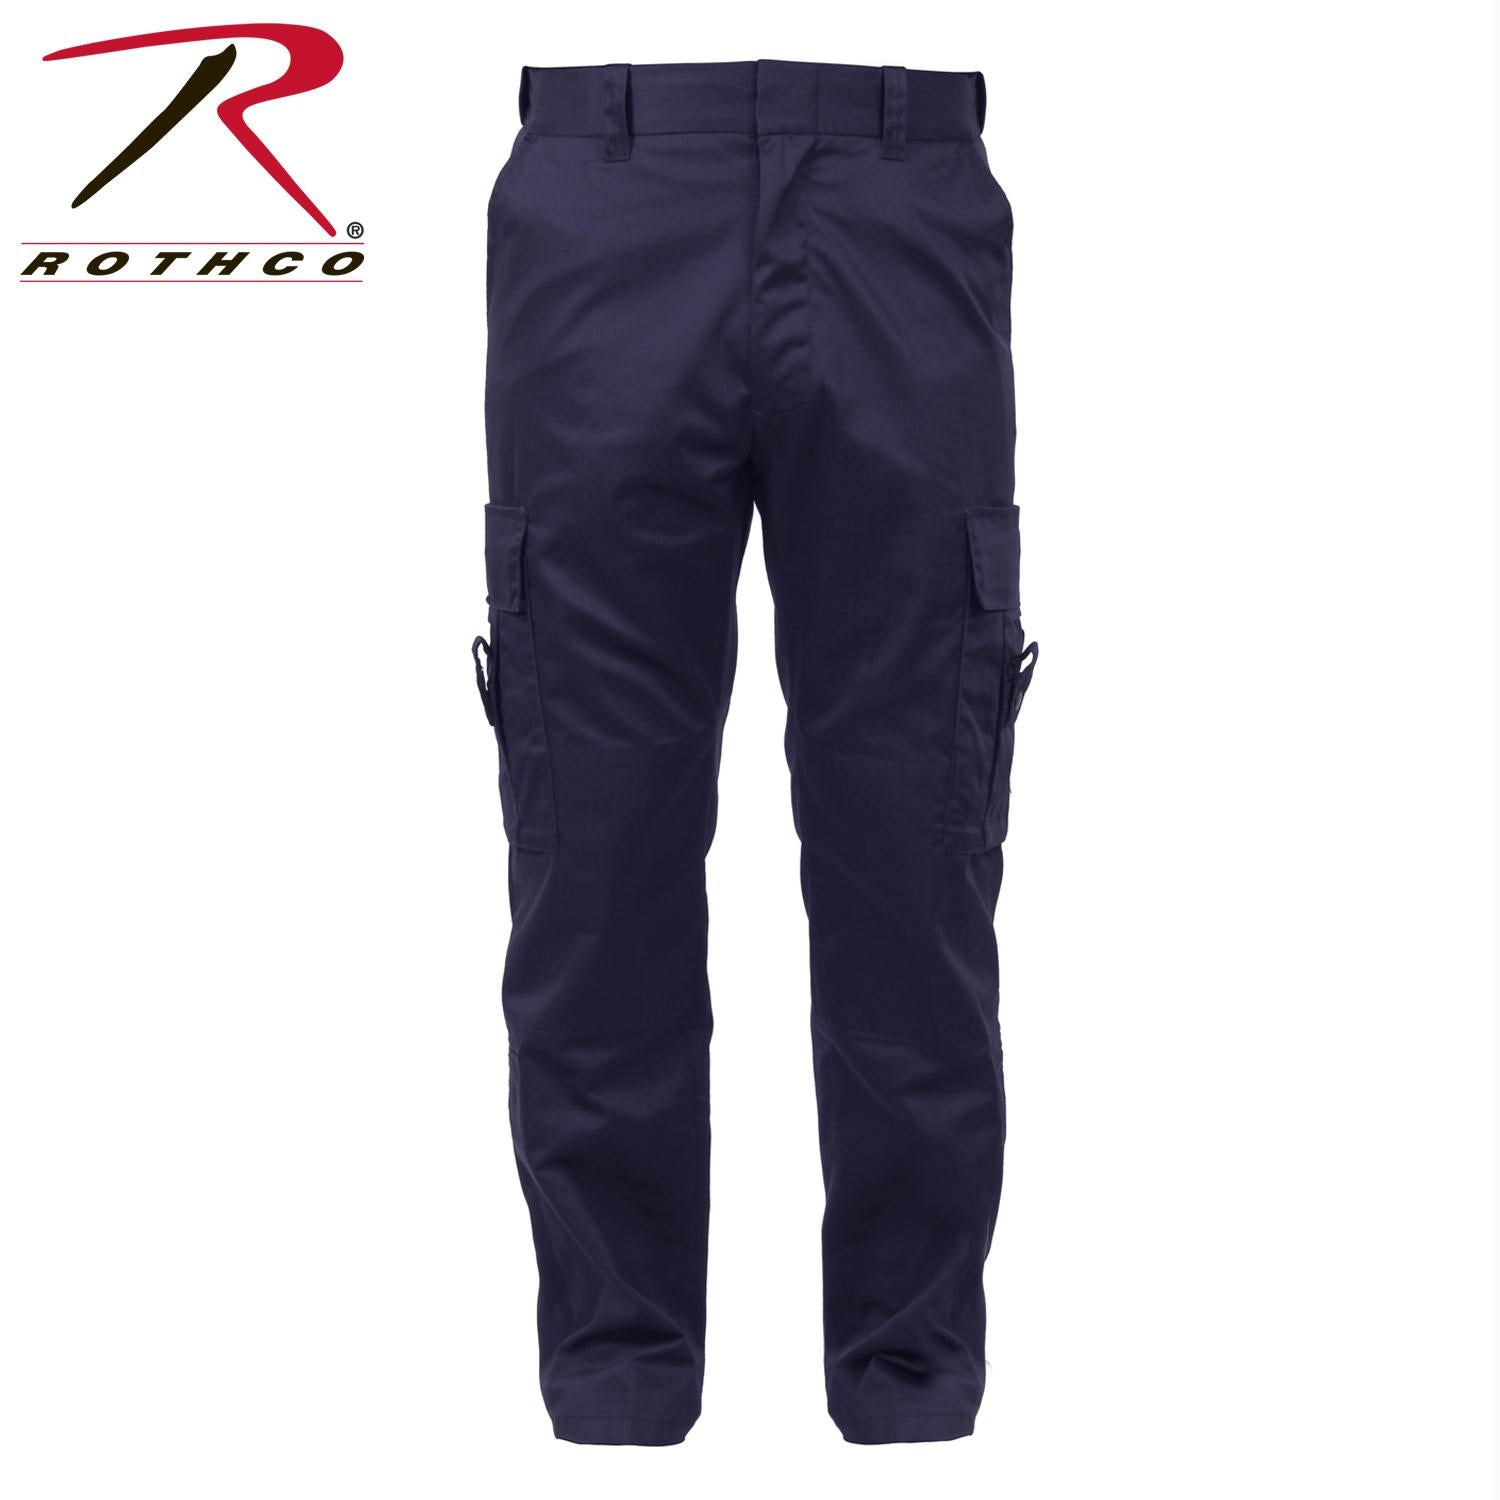 Rothco Deluxe EMT Pants - Navy Blue / 44